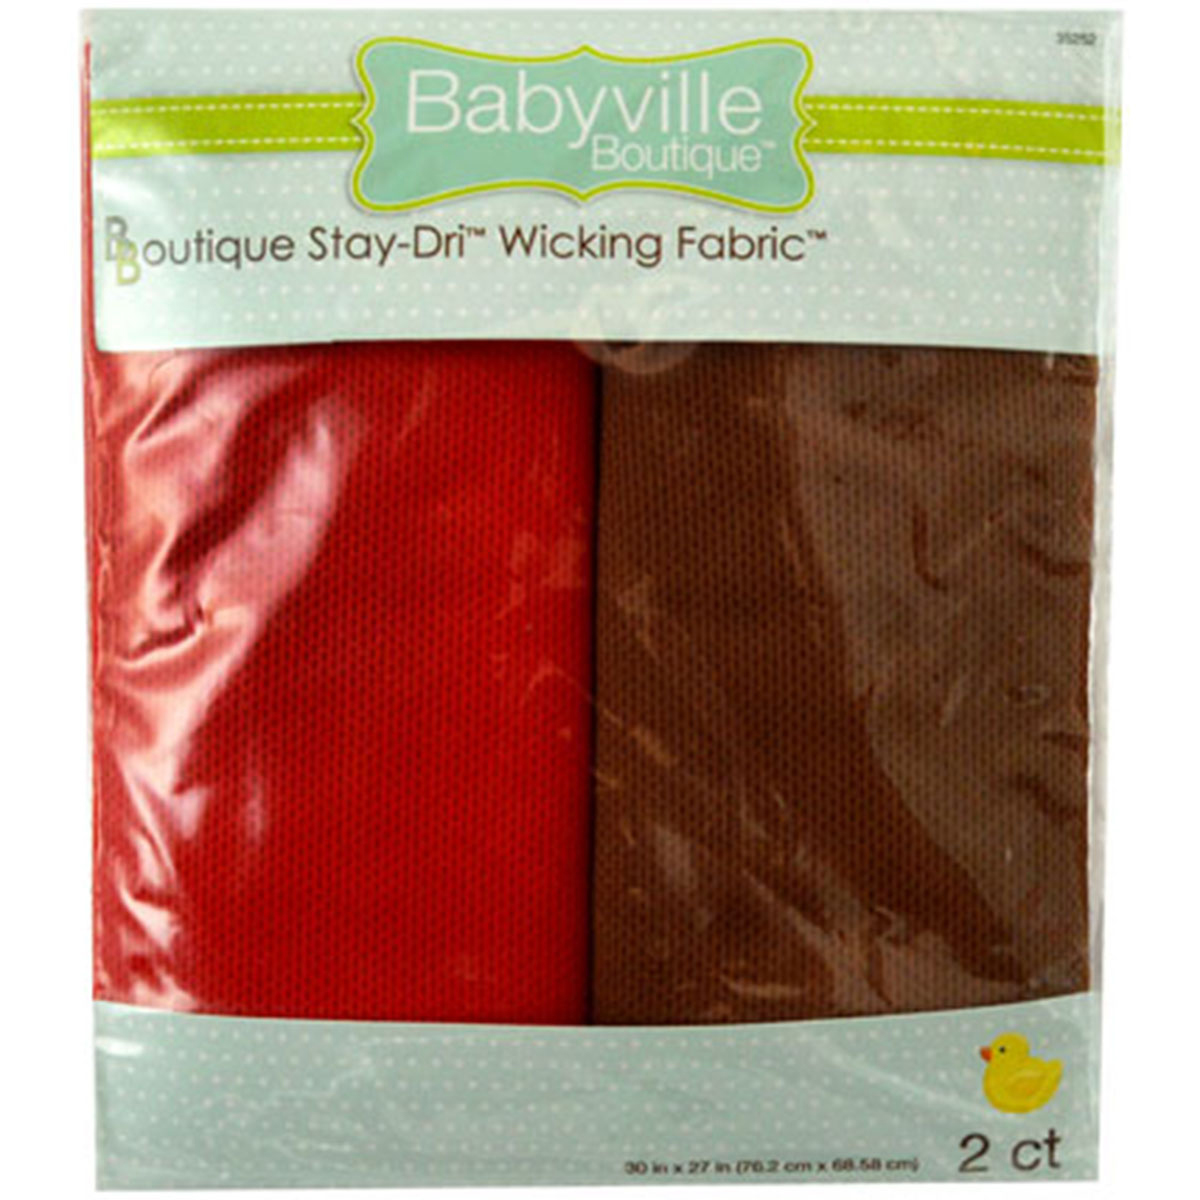 Babyville Boutique 30\u0022 x 27\u0022 Wicking Fabric Red Brown